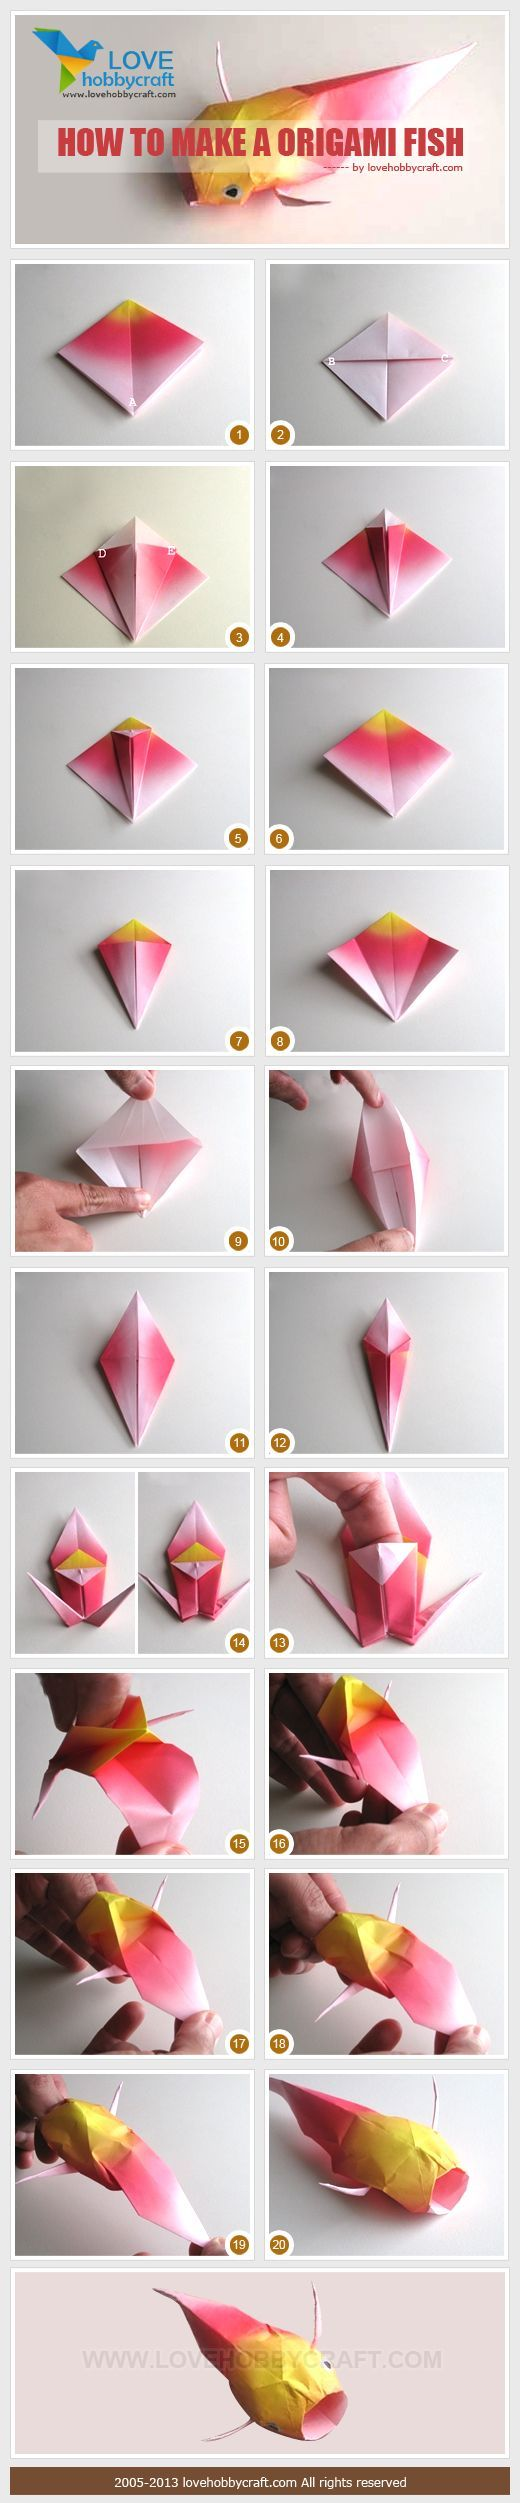 How To Make Origami Fish From Paper Origami Origami Fish And Craft